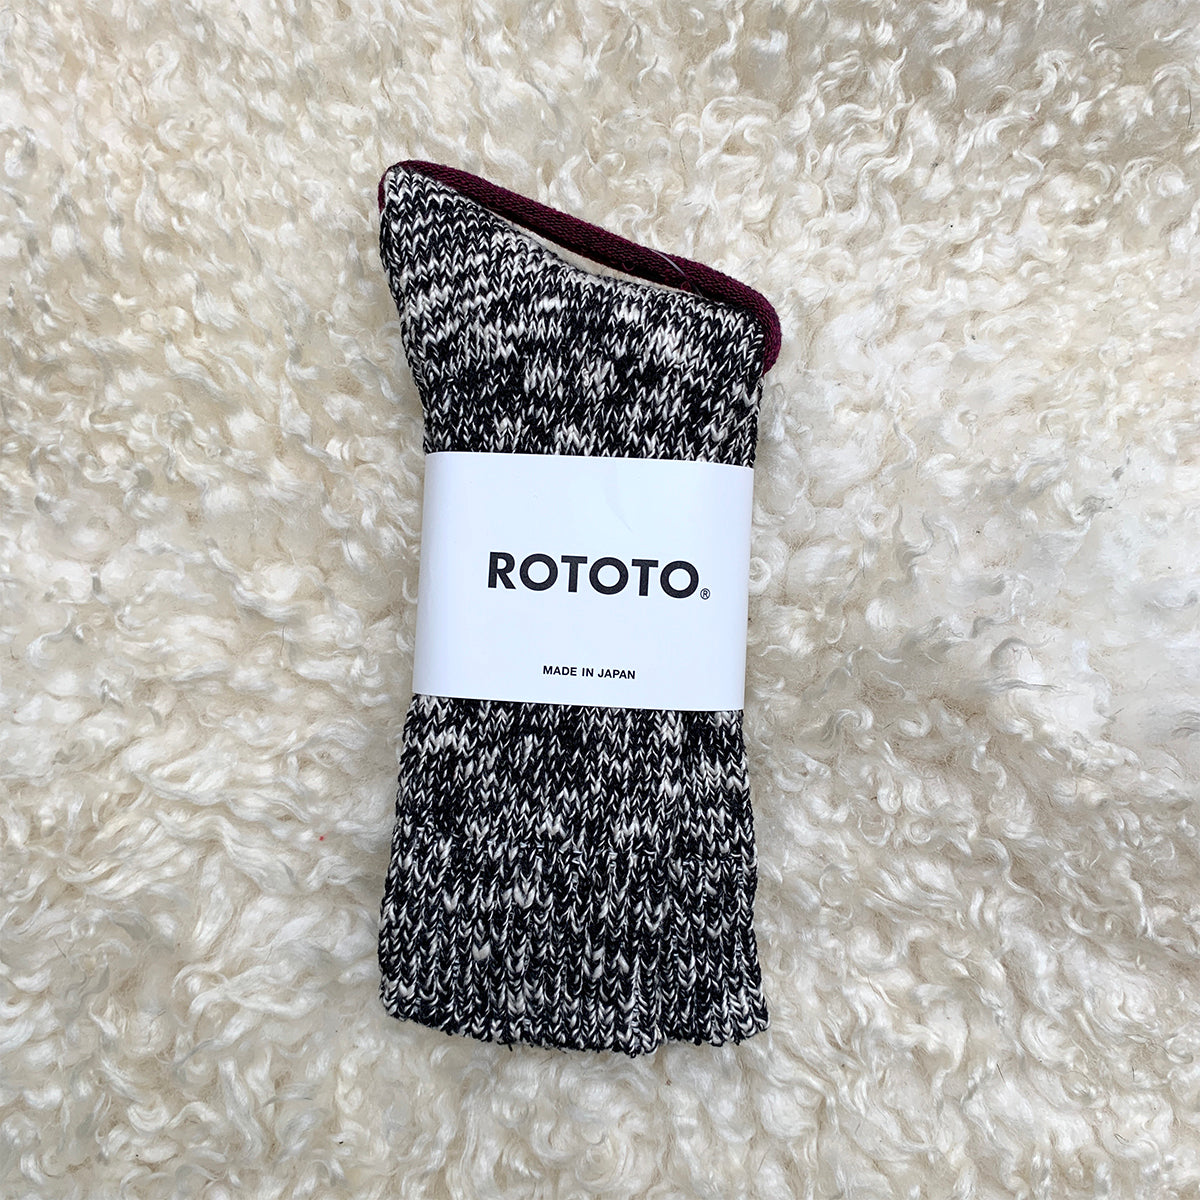 rototo black marl socks